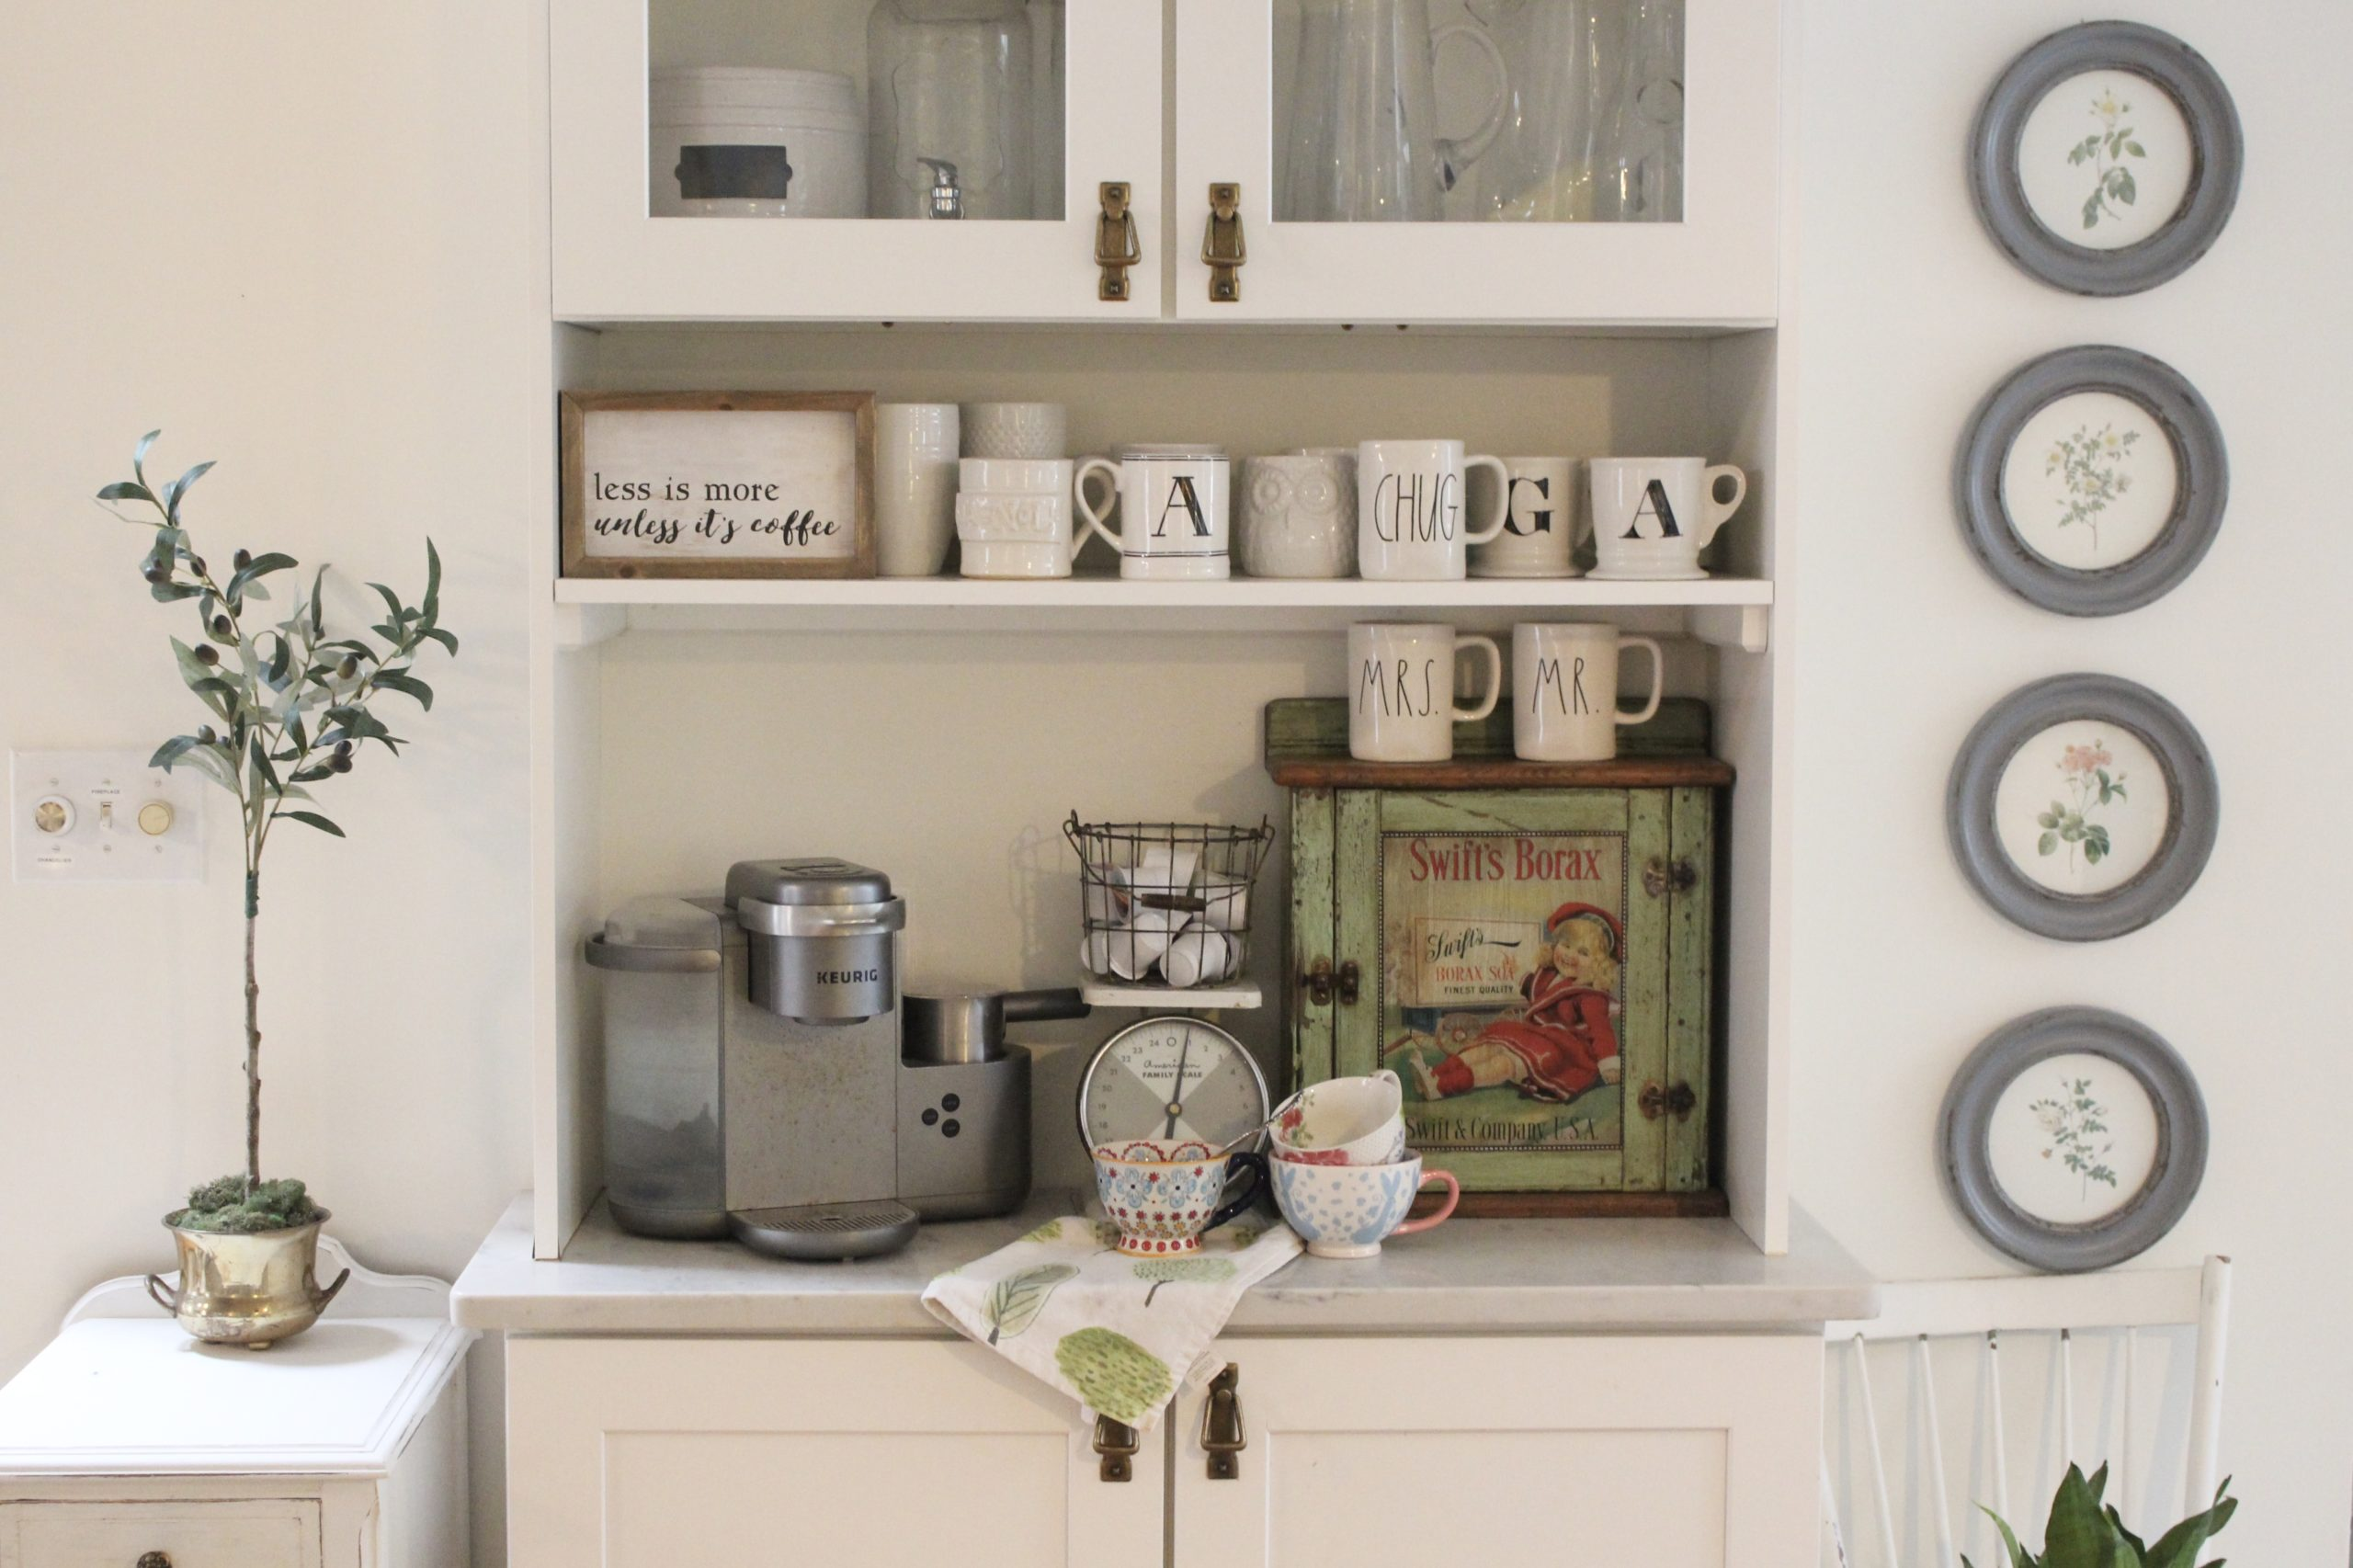 Thrift Store Cabinet Updated with Chalk Paint for a Coffee Bar.- diy- projects- painting furniture- using chalk paint- updating furniture- rusteoleum linen white chalk paint- coffee bar- coffee station